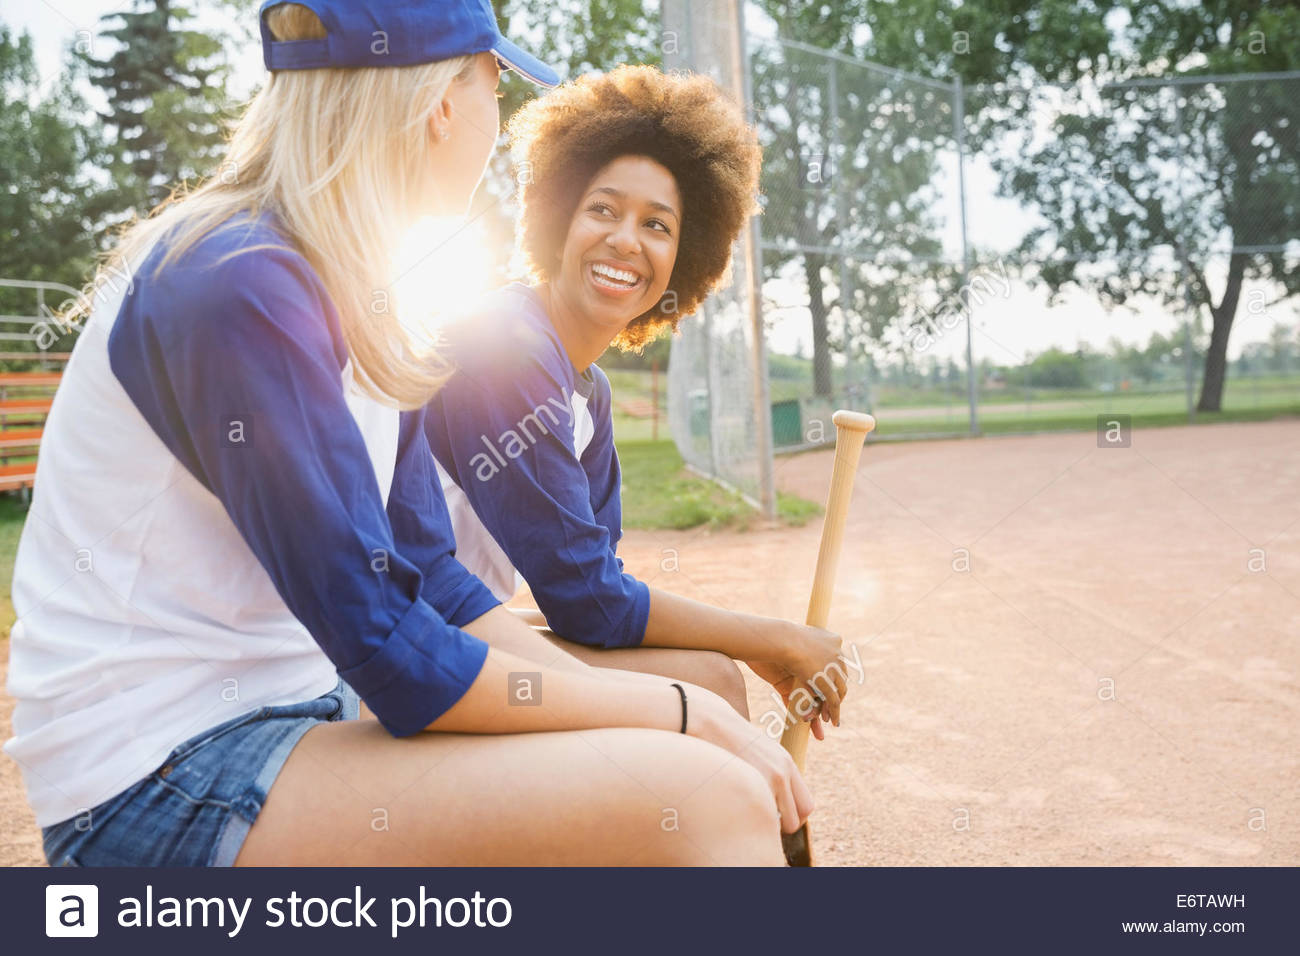 Baseball players sitting on field - Stock Image